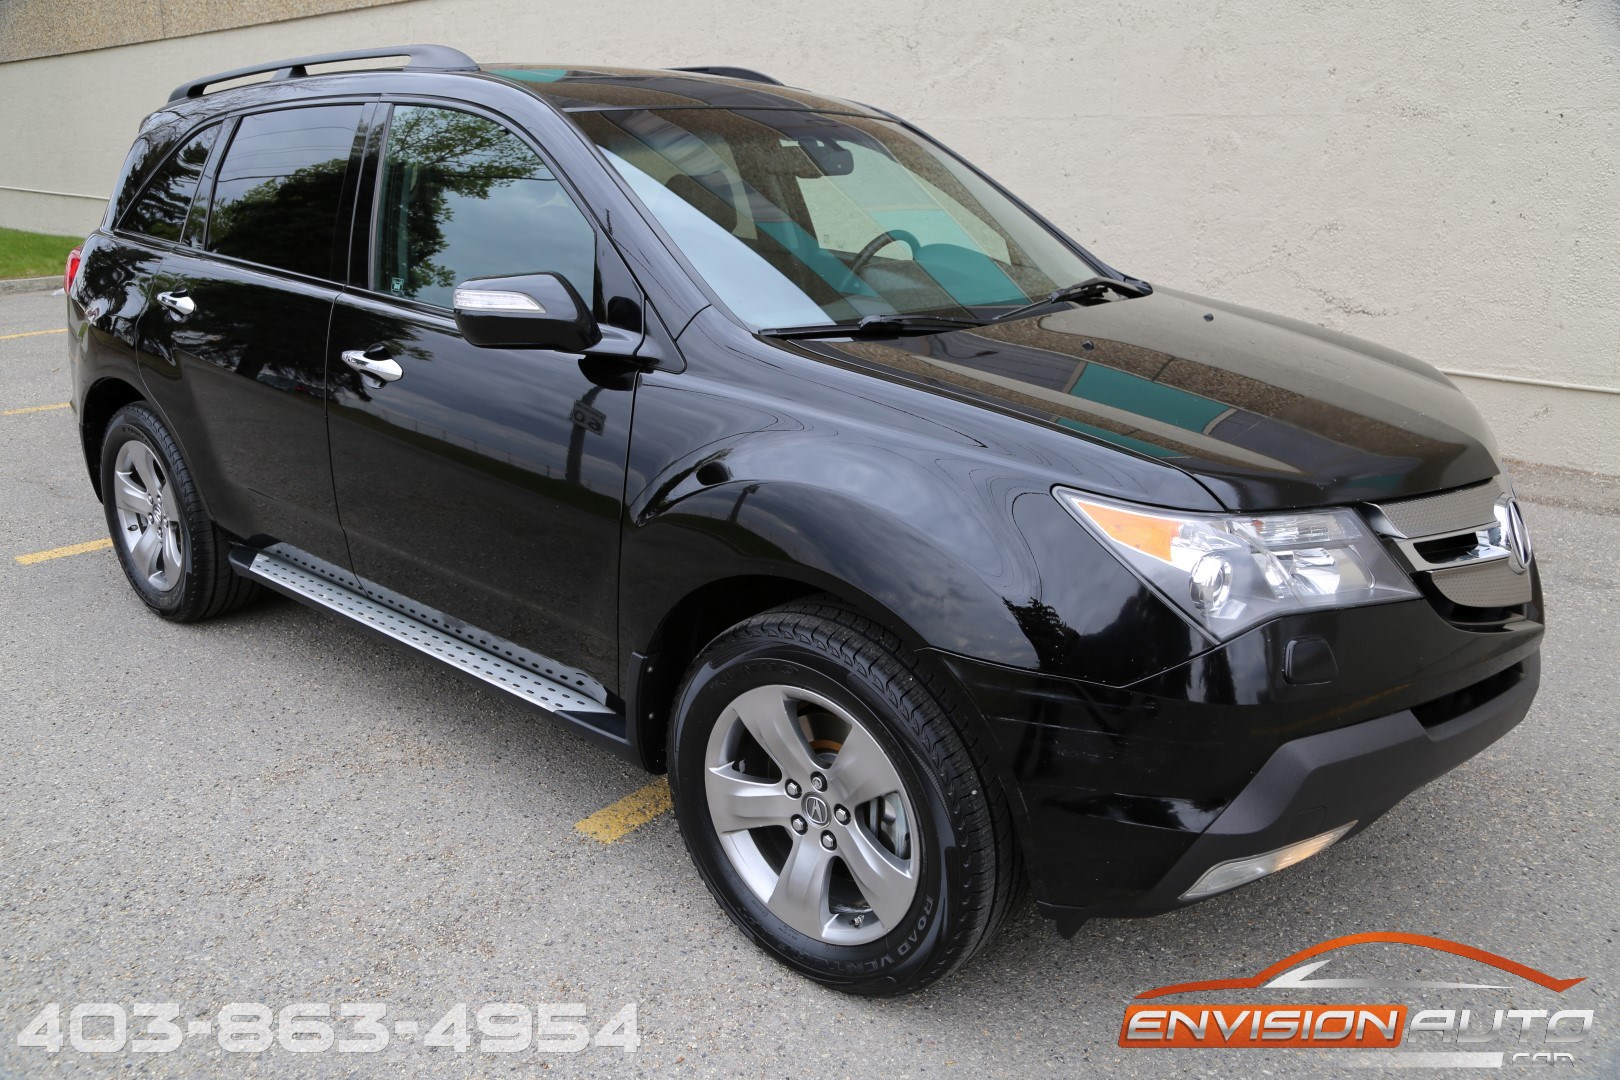 2007 acura mdx awd tech elite envision auto calgary highline luxury sports cars suv. Black Bedroom Furniture Sets. Home Design Ideas